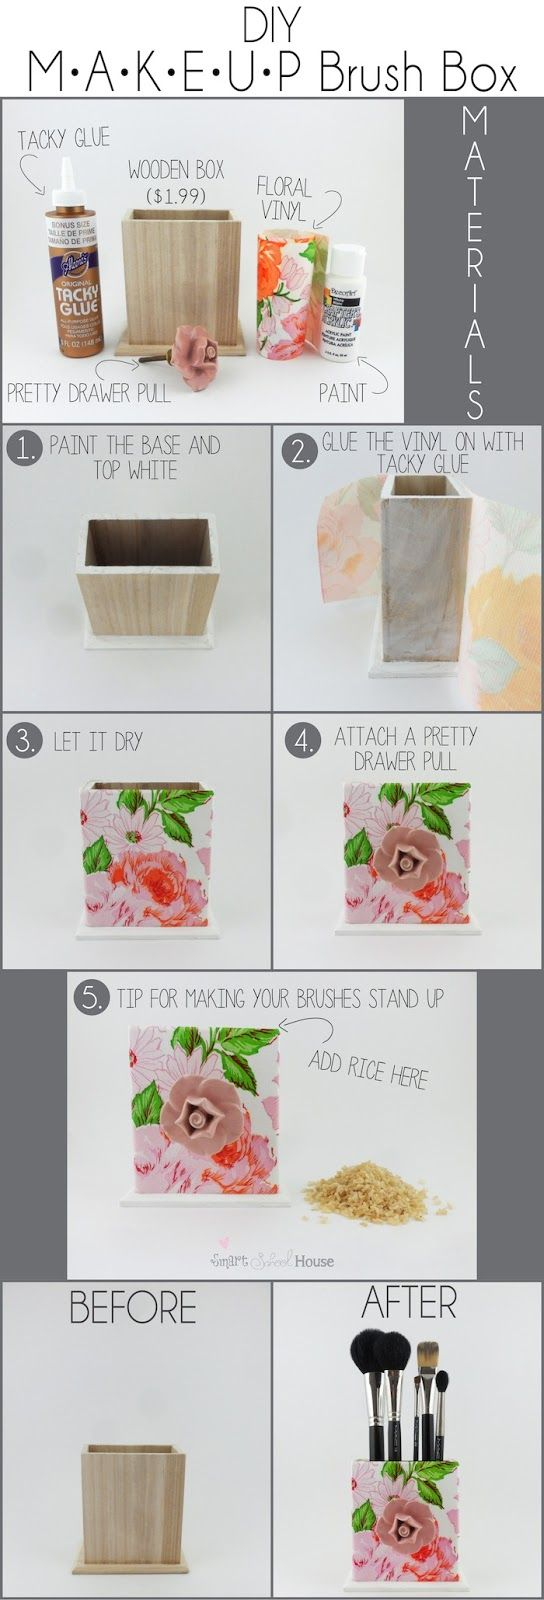 Add rice to make brushed stand upright Smart School House •Pretty Inspirations• : DIY Makeup Brush Box